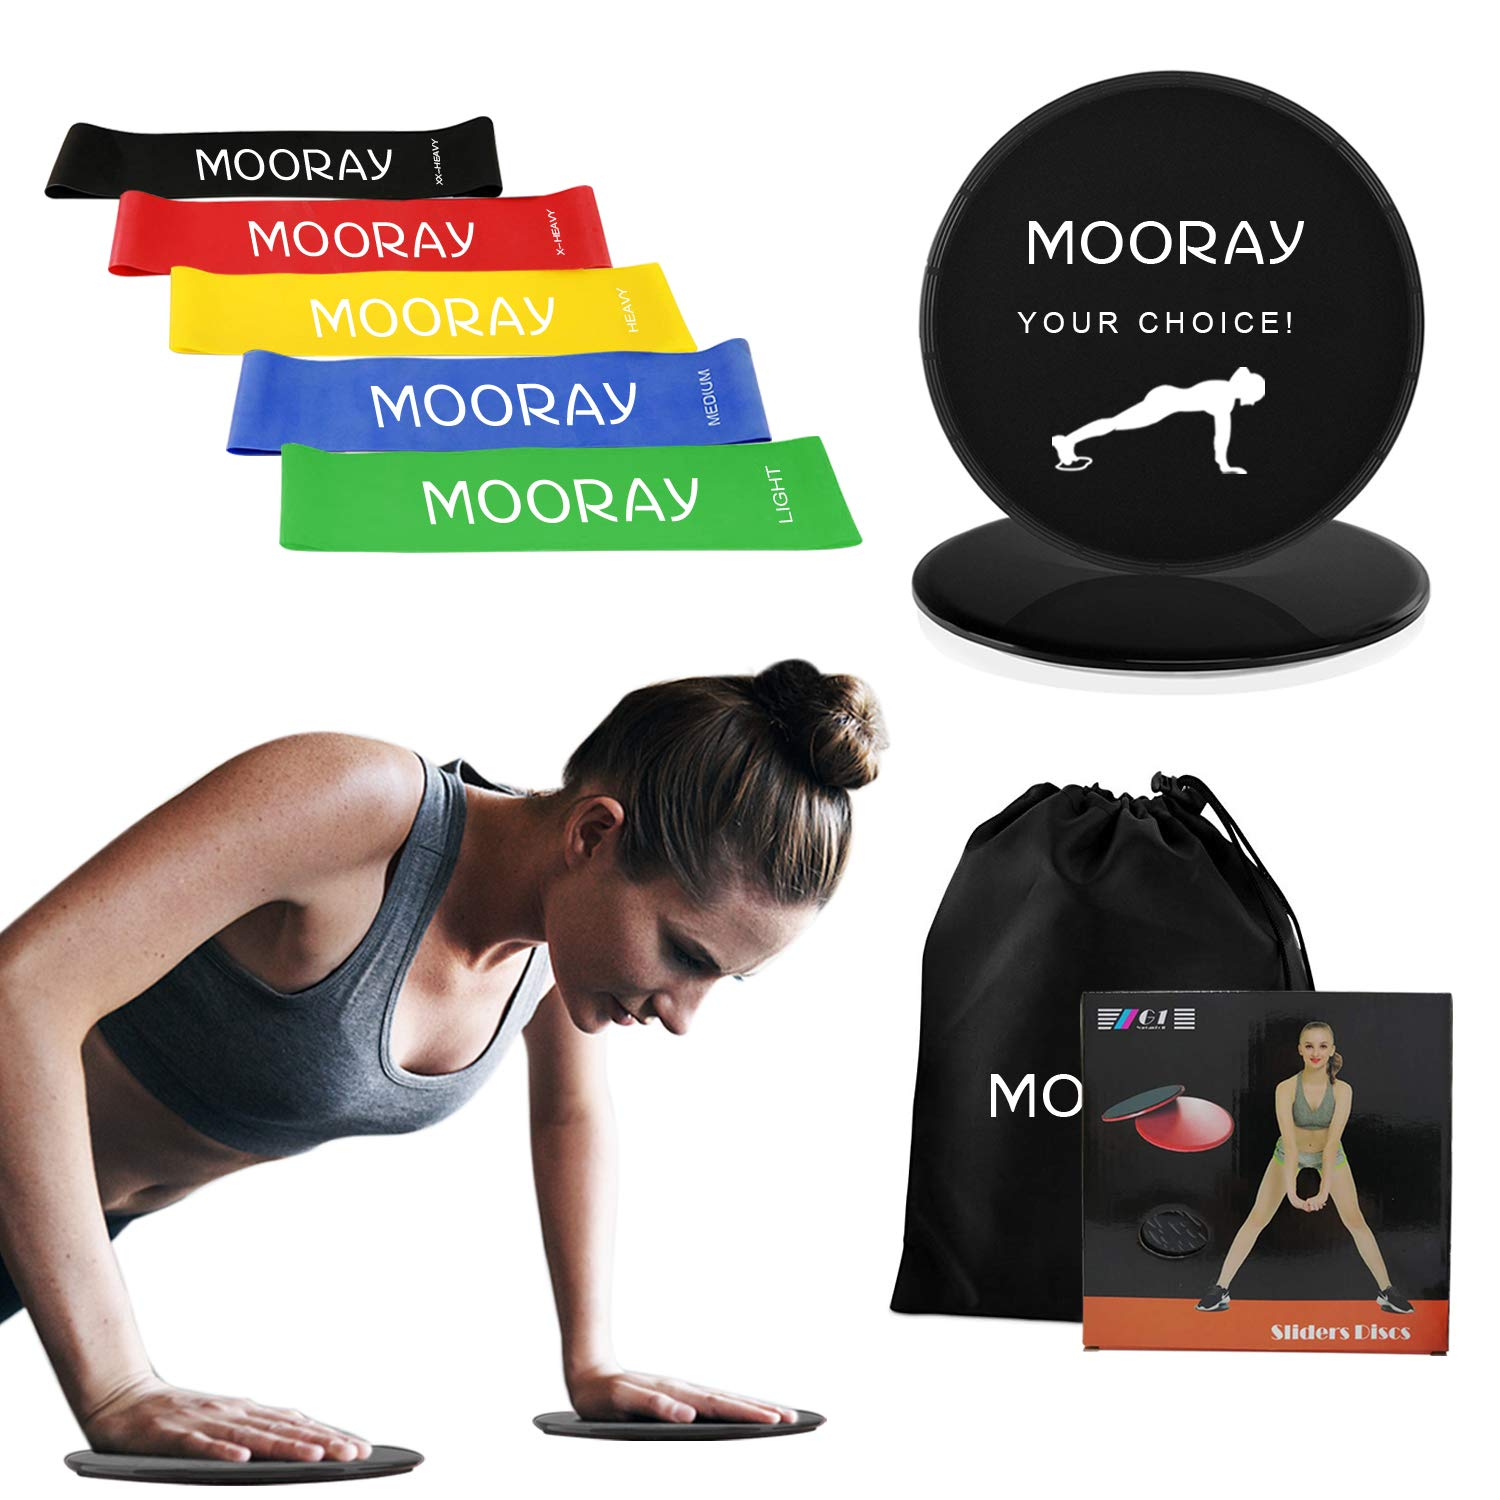 Pilates and More Stretching 12-inch Inspirational Premium Workout Bands for Weight Training Set of 5 Home Fitness Physical Therapy Yoga Sweatz Resistance Loop Exercise Bands with Carry Bag